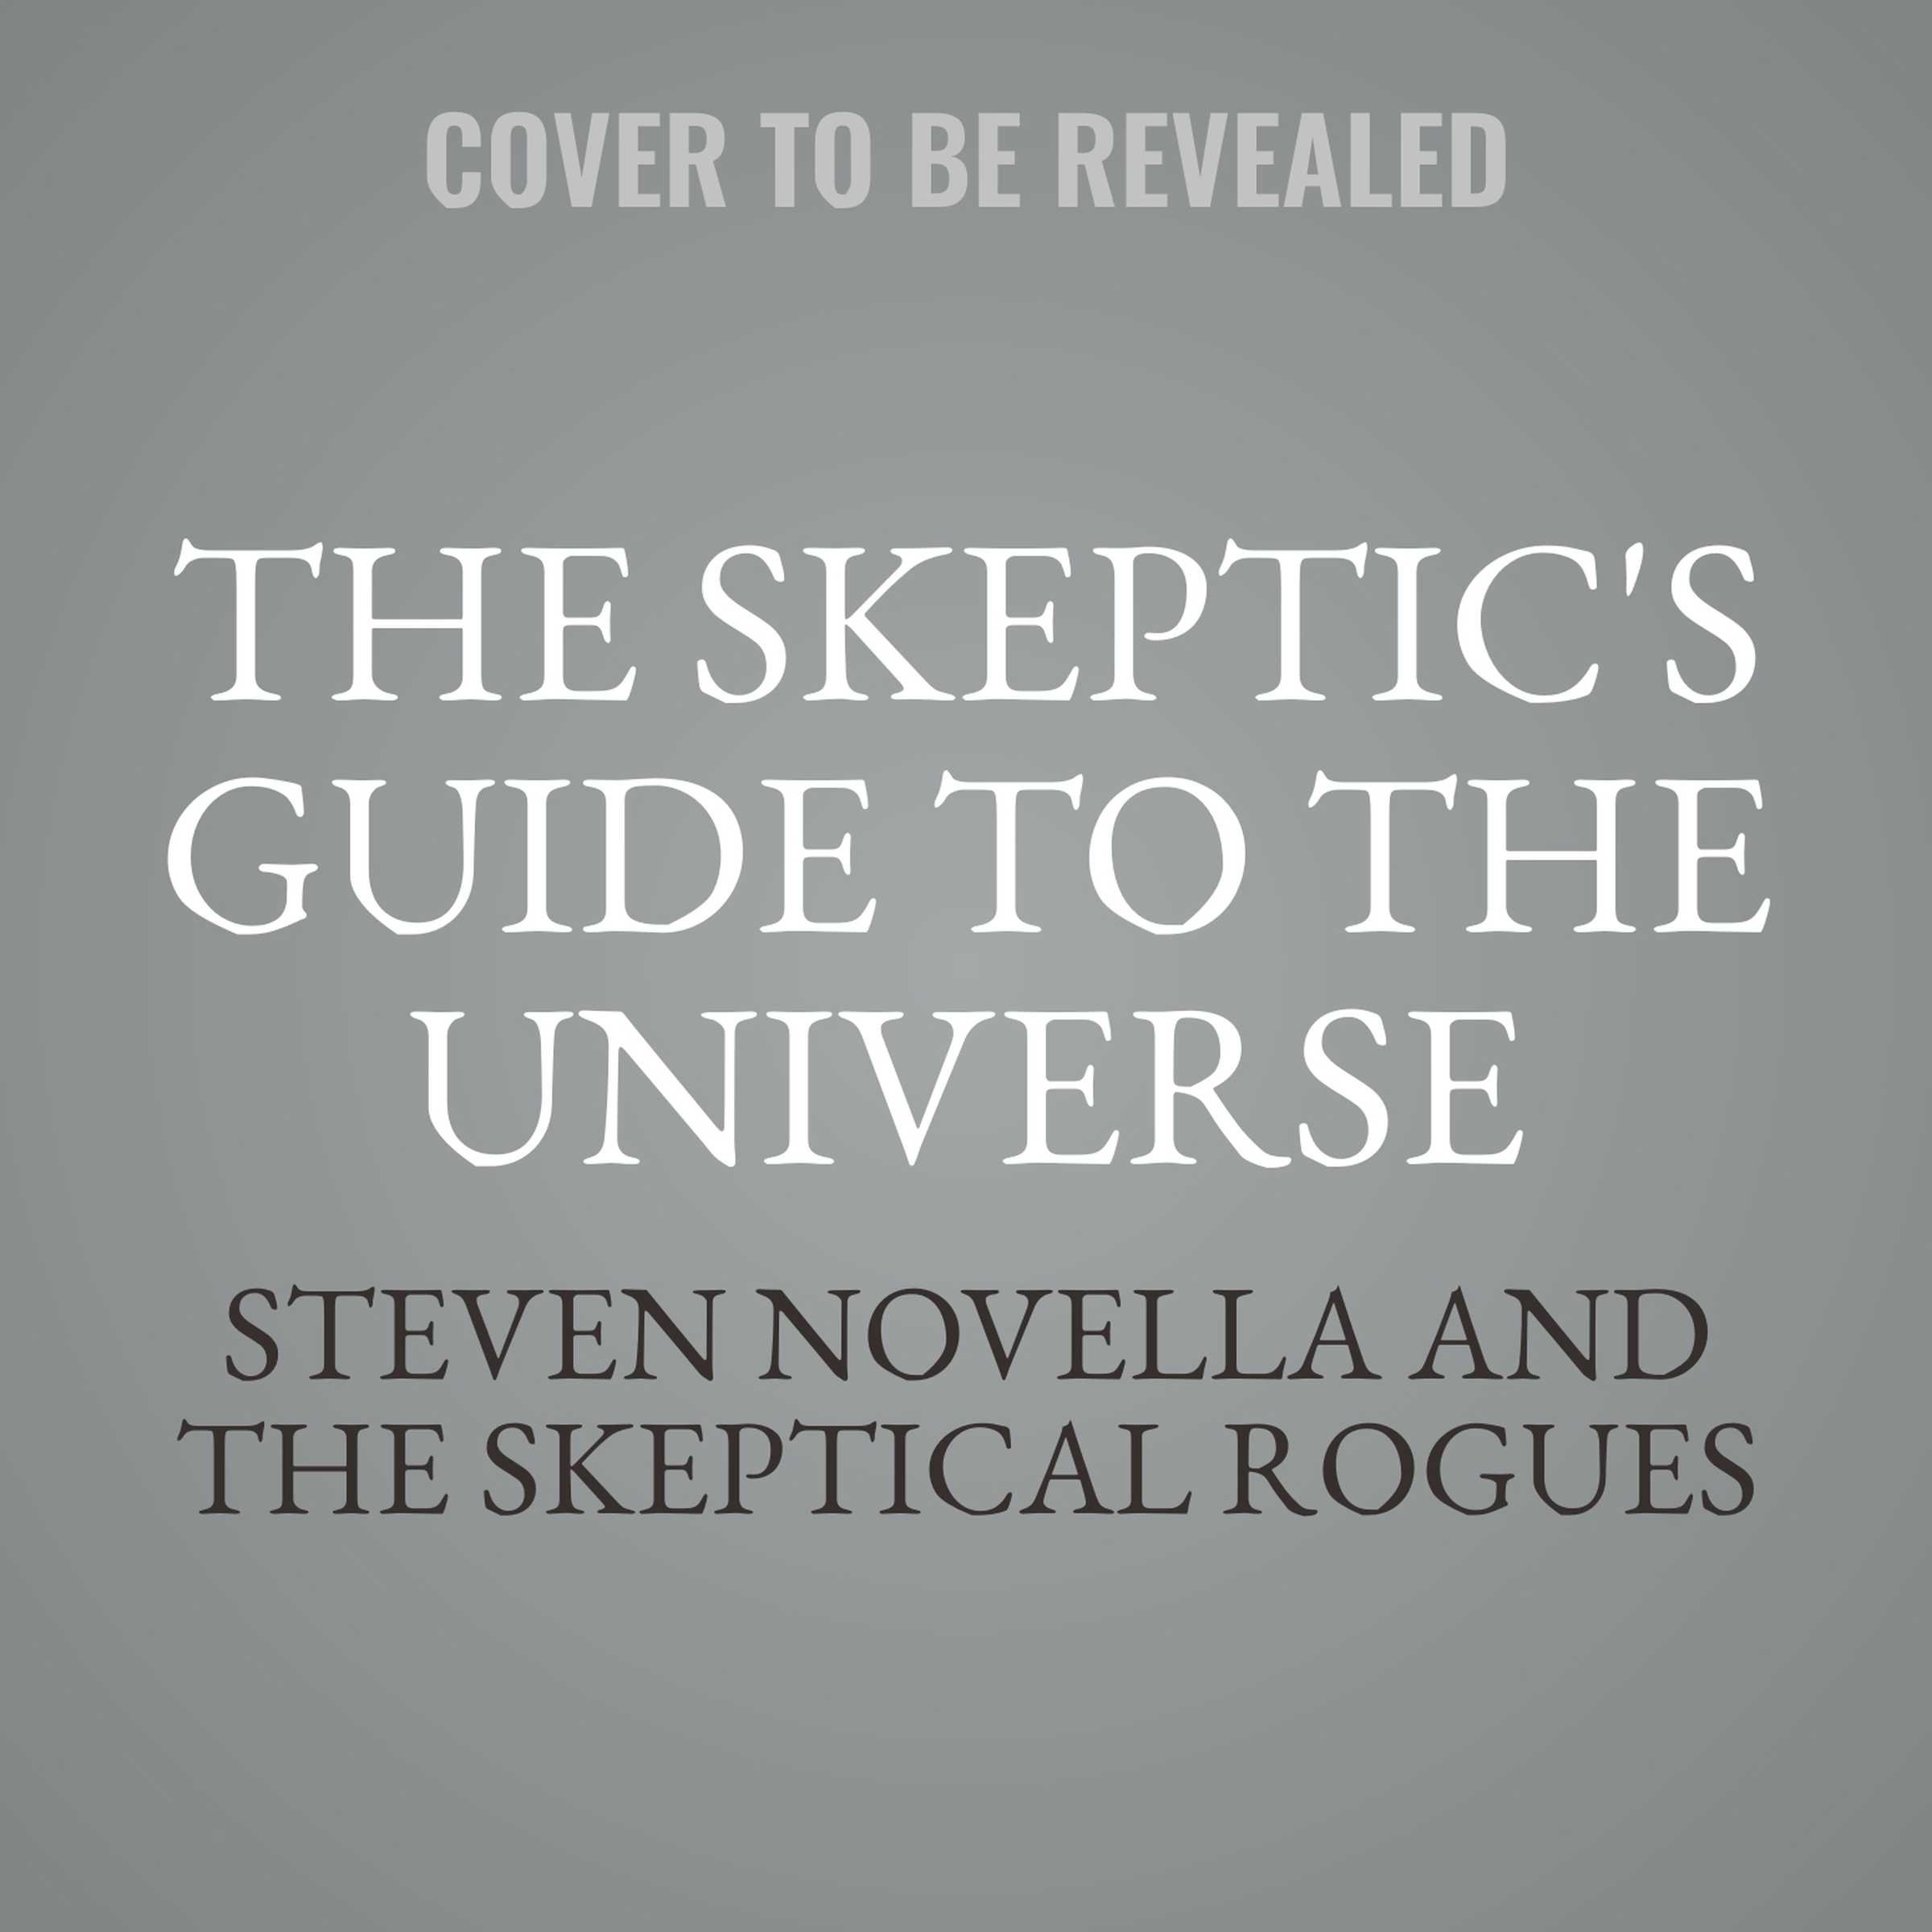 The Skeptic's Guide To The Universe: How to Know What's Really Real in a World Increasingly Full of Fake